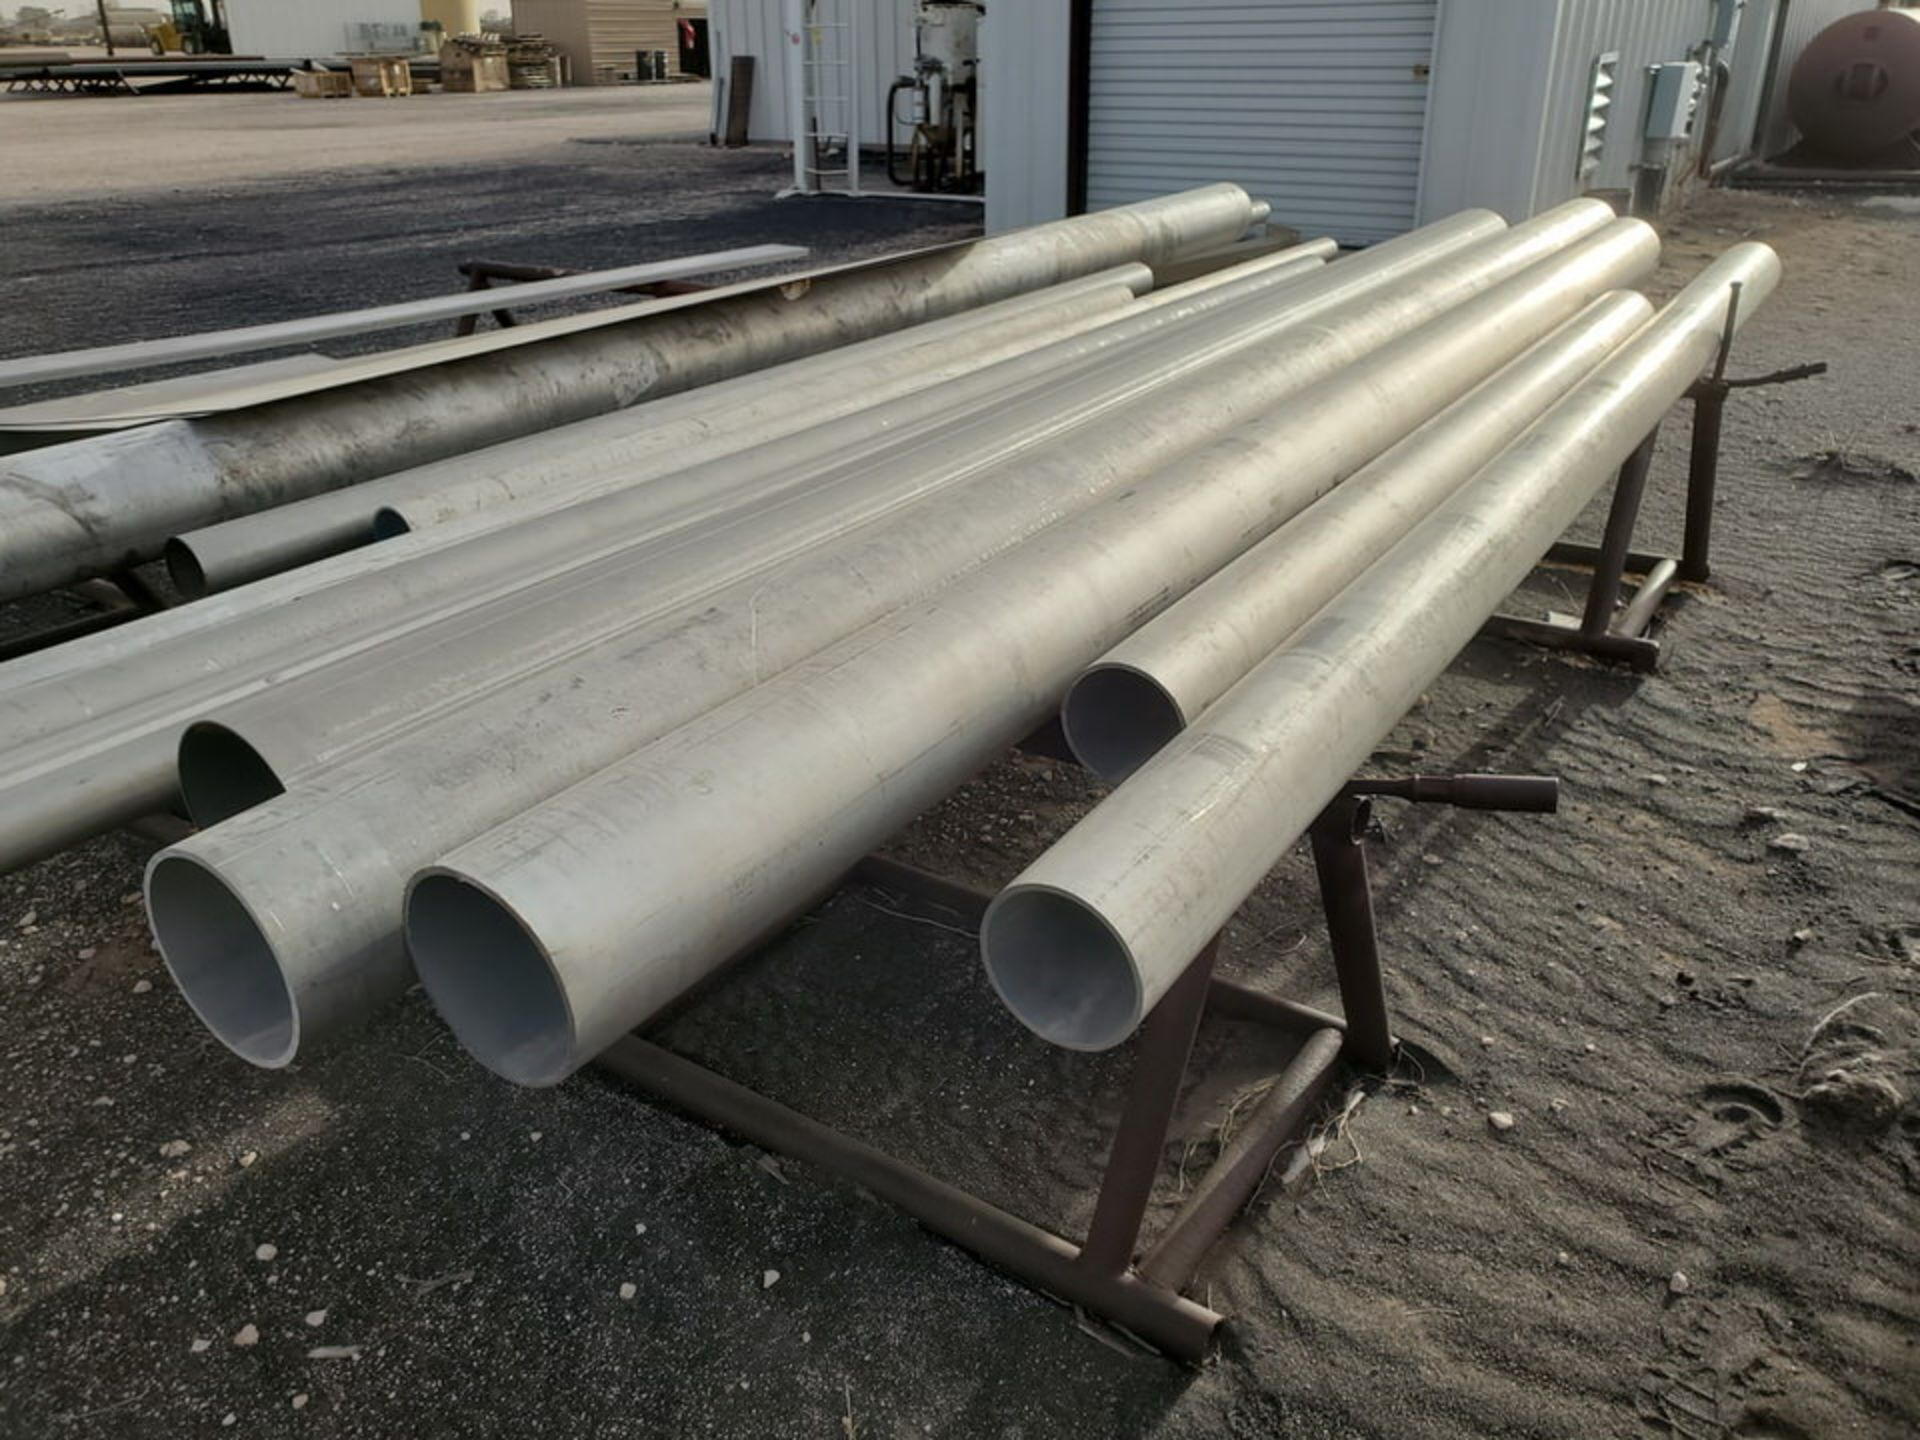 Assorted Matl. To Include But Not Limited To: S/S Flat Bar, Pipe & Sheets (Rack Excluded) - Image 13 of 22